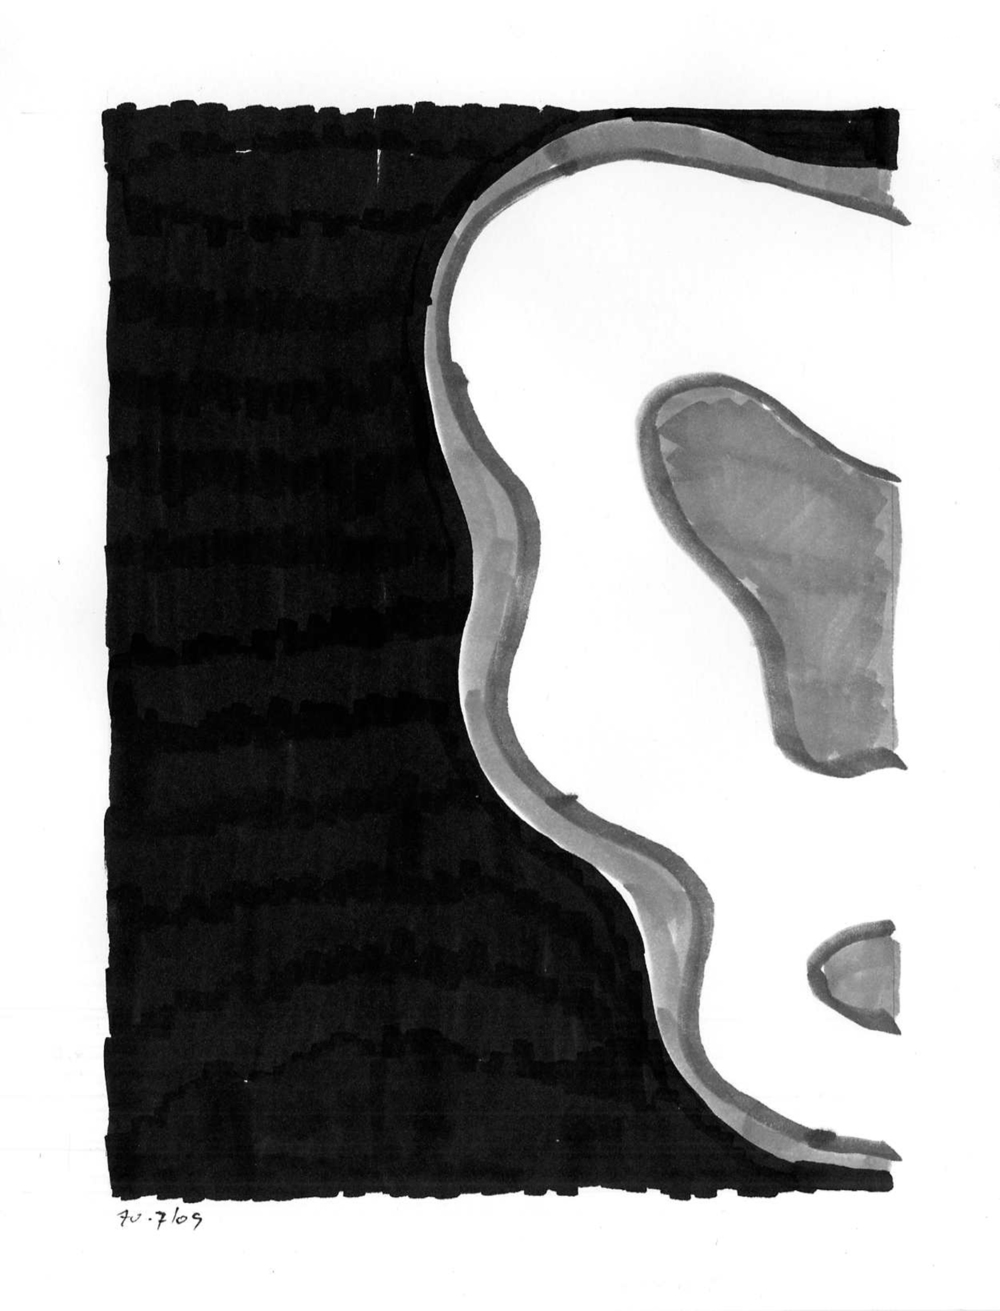 ii09_03  , 2009, india ink on paper, 12 x 9 in.